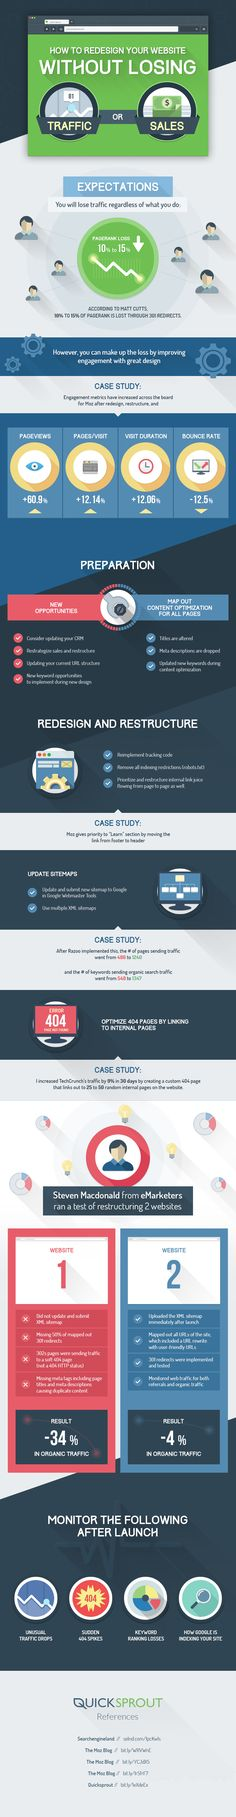 How to Redesign Your Website Without Losing Traffic or Sales #infographic